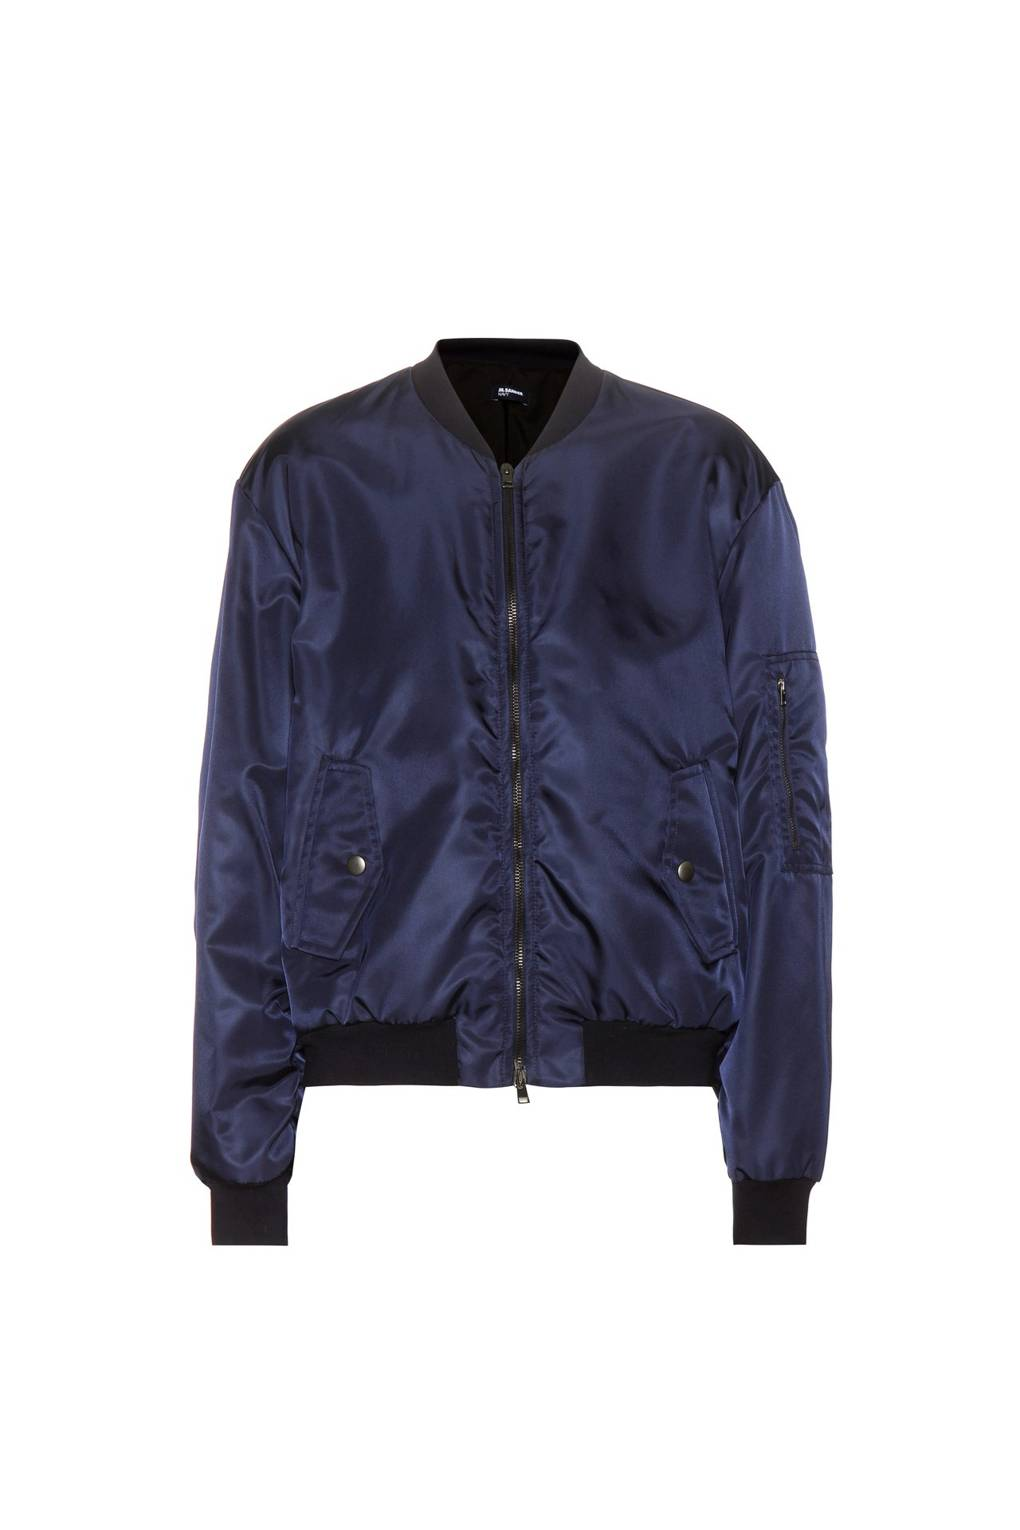 1596cef2dd54 Best Bomber Jackets To Buy Now